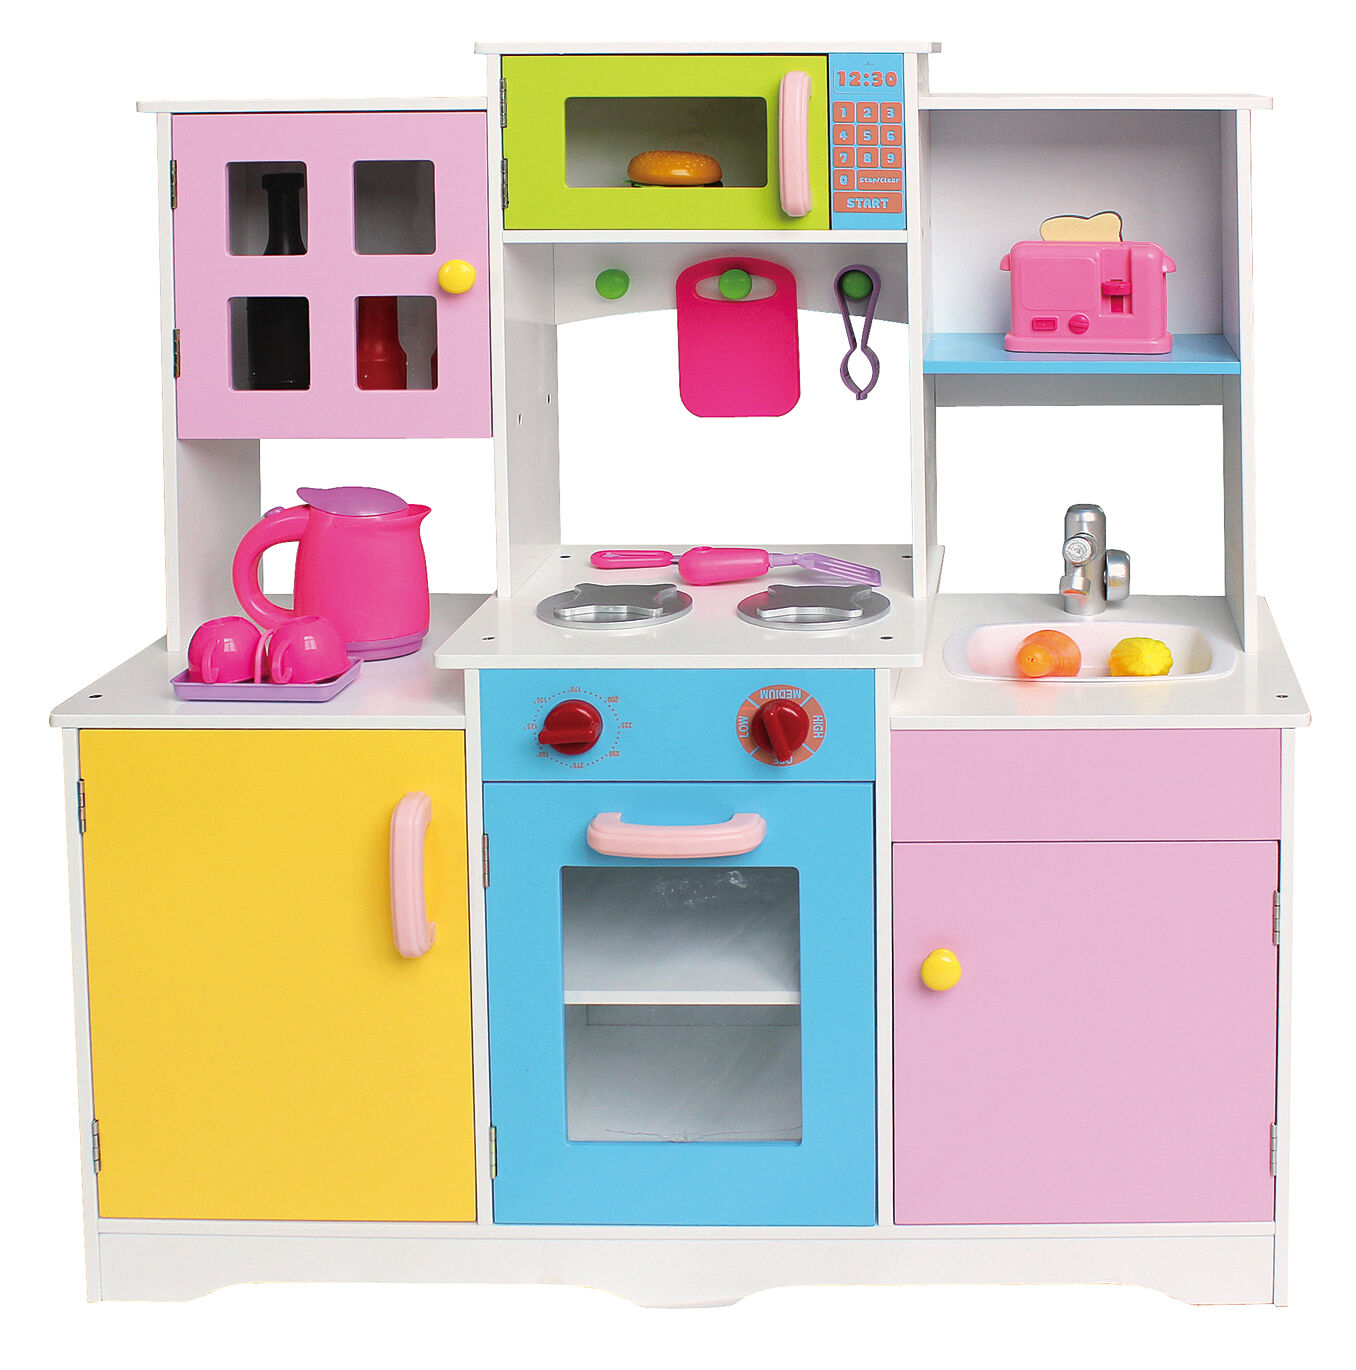 Details About Large Girls Boys Kids Wooden Play Kitchen Role Play Pretend Toy Furniture